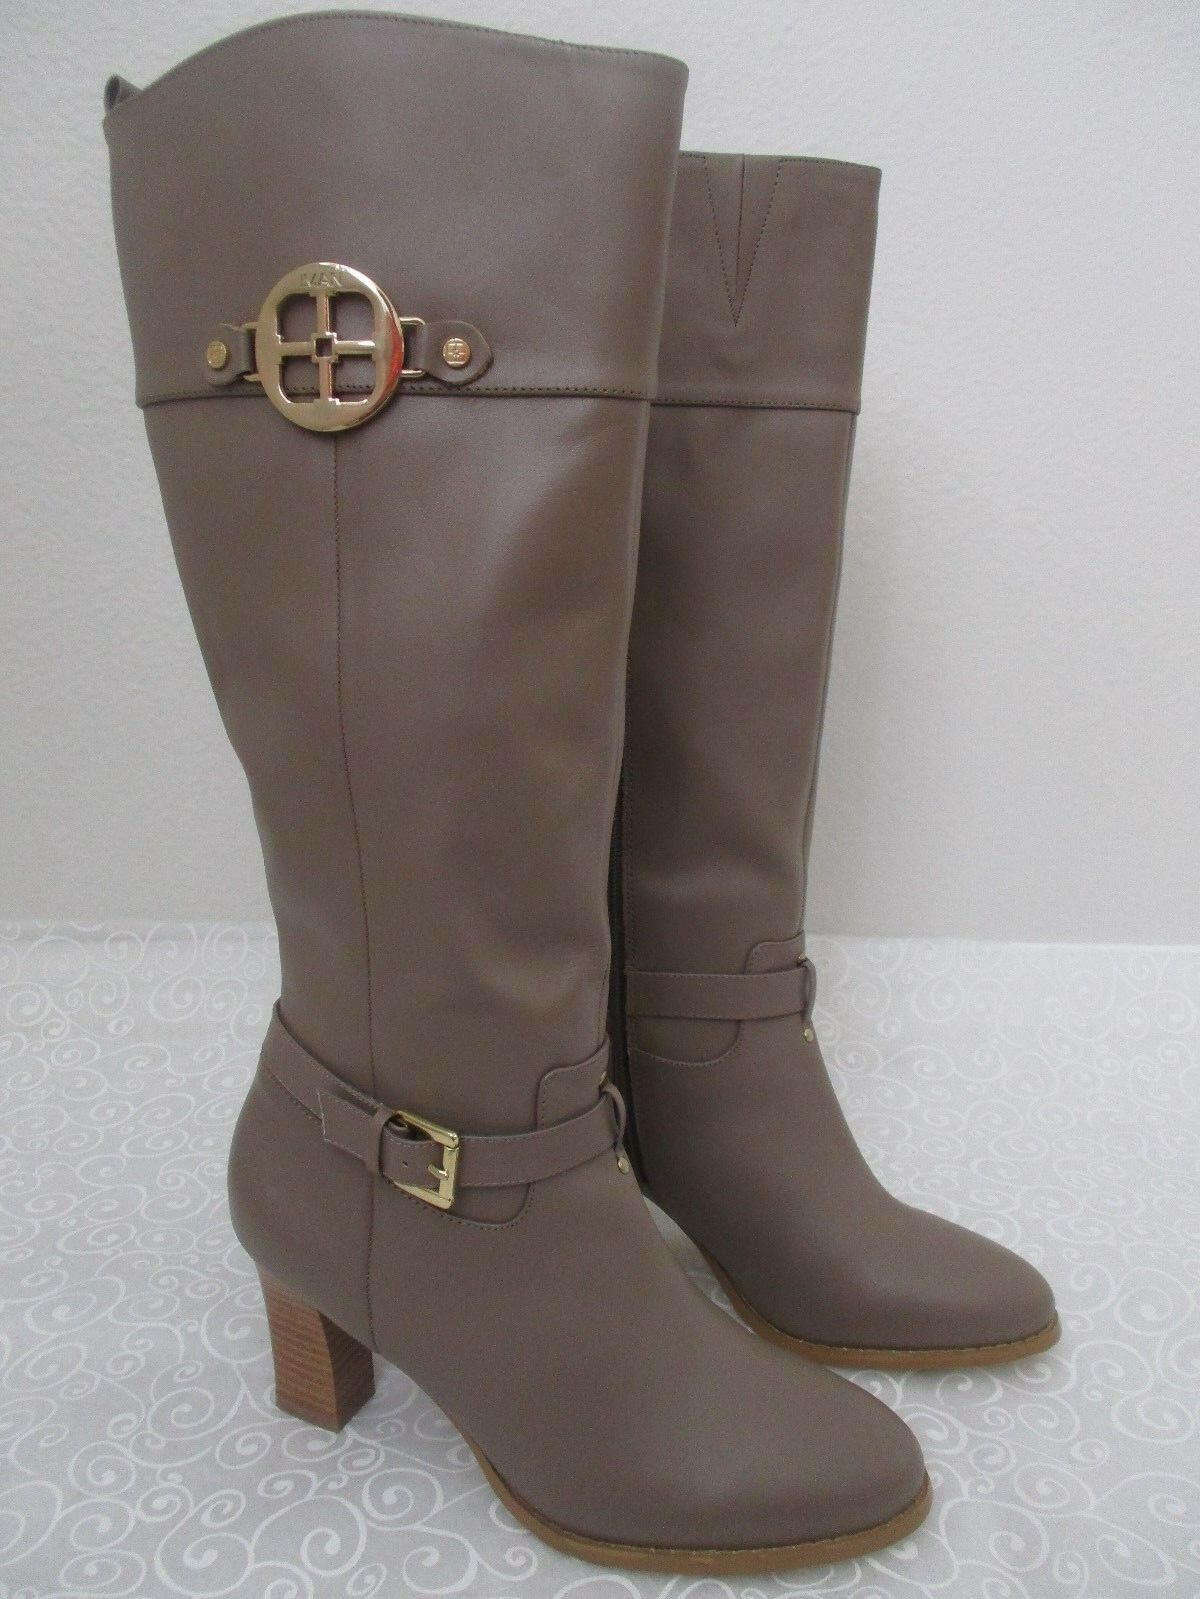 169  IMAN TAUPE LEATHER KNEE HIGH BOOTS SIZE 8 1 2 M - NEW